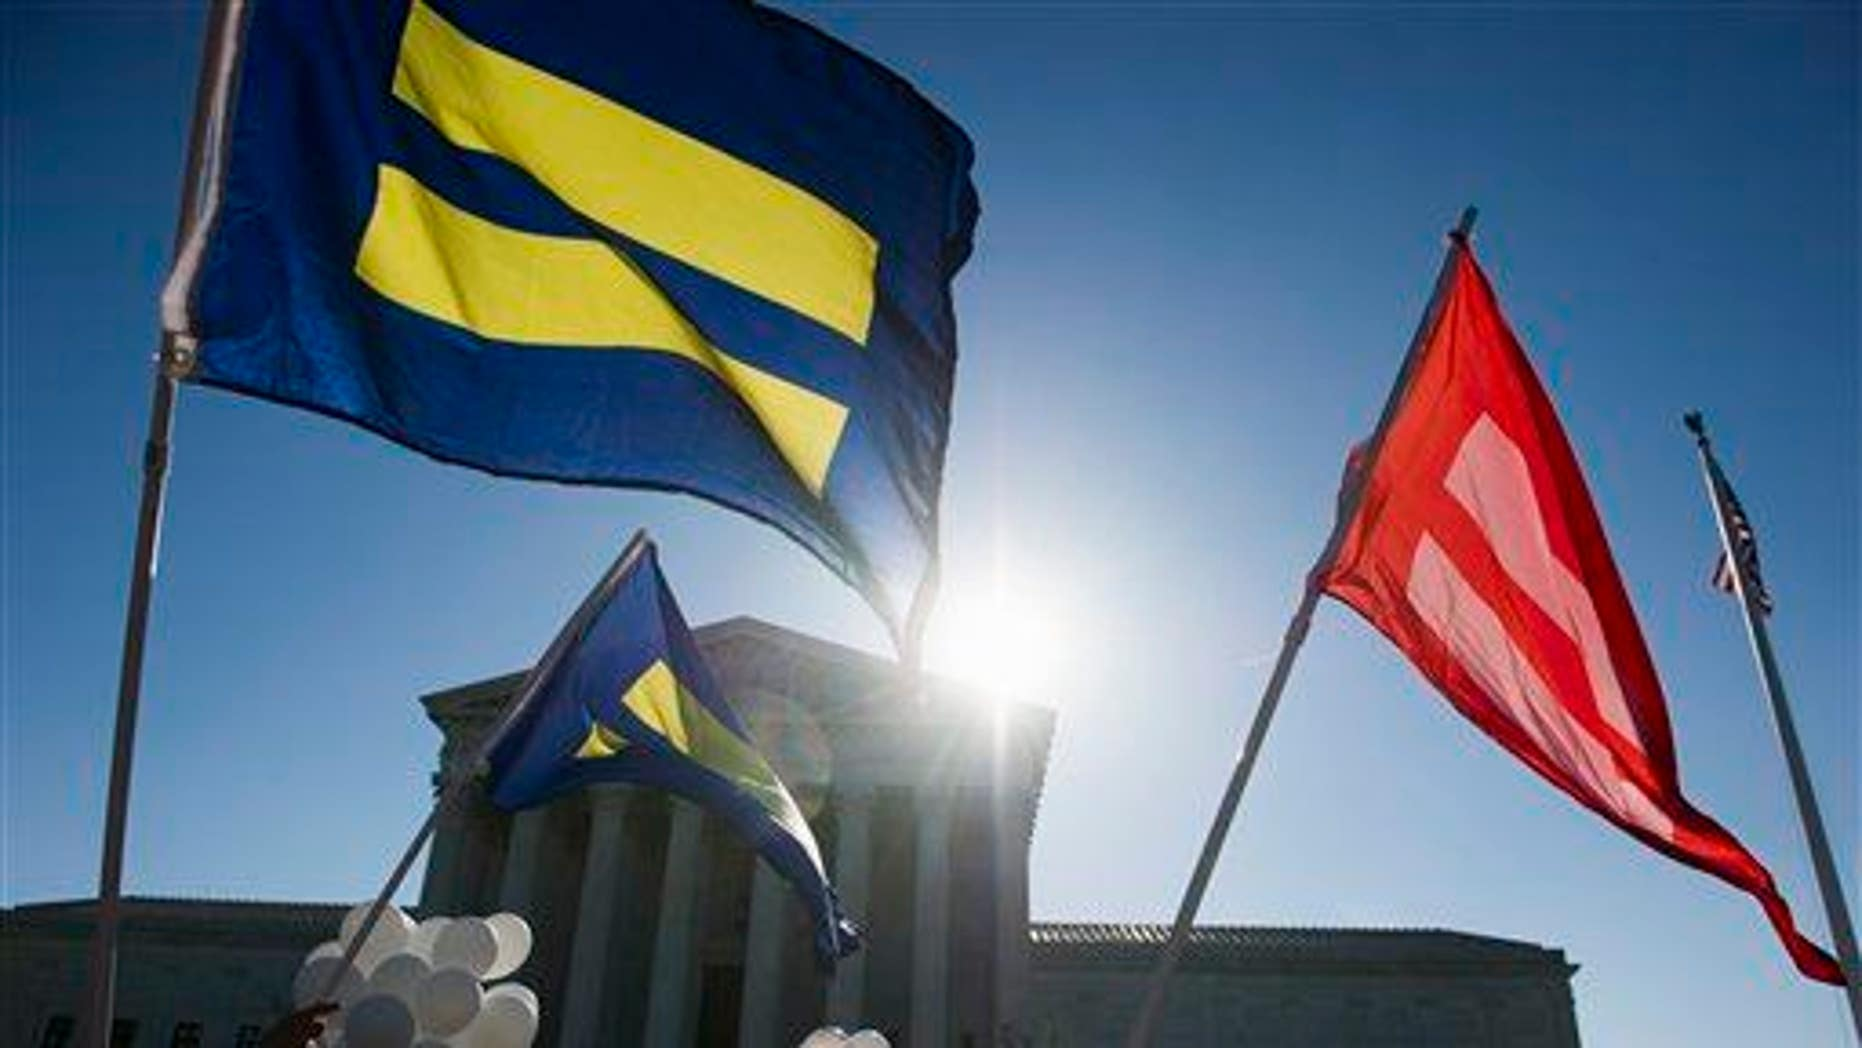 Equality flags fly in front of the Supreme Court in Washington, Tuesday, April 28, 2015